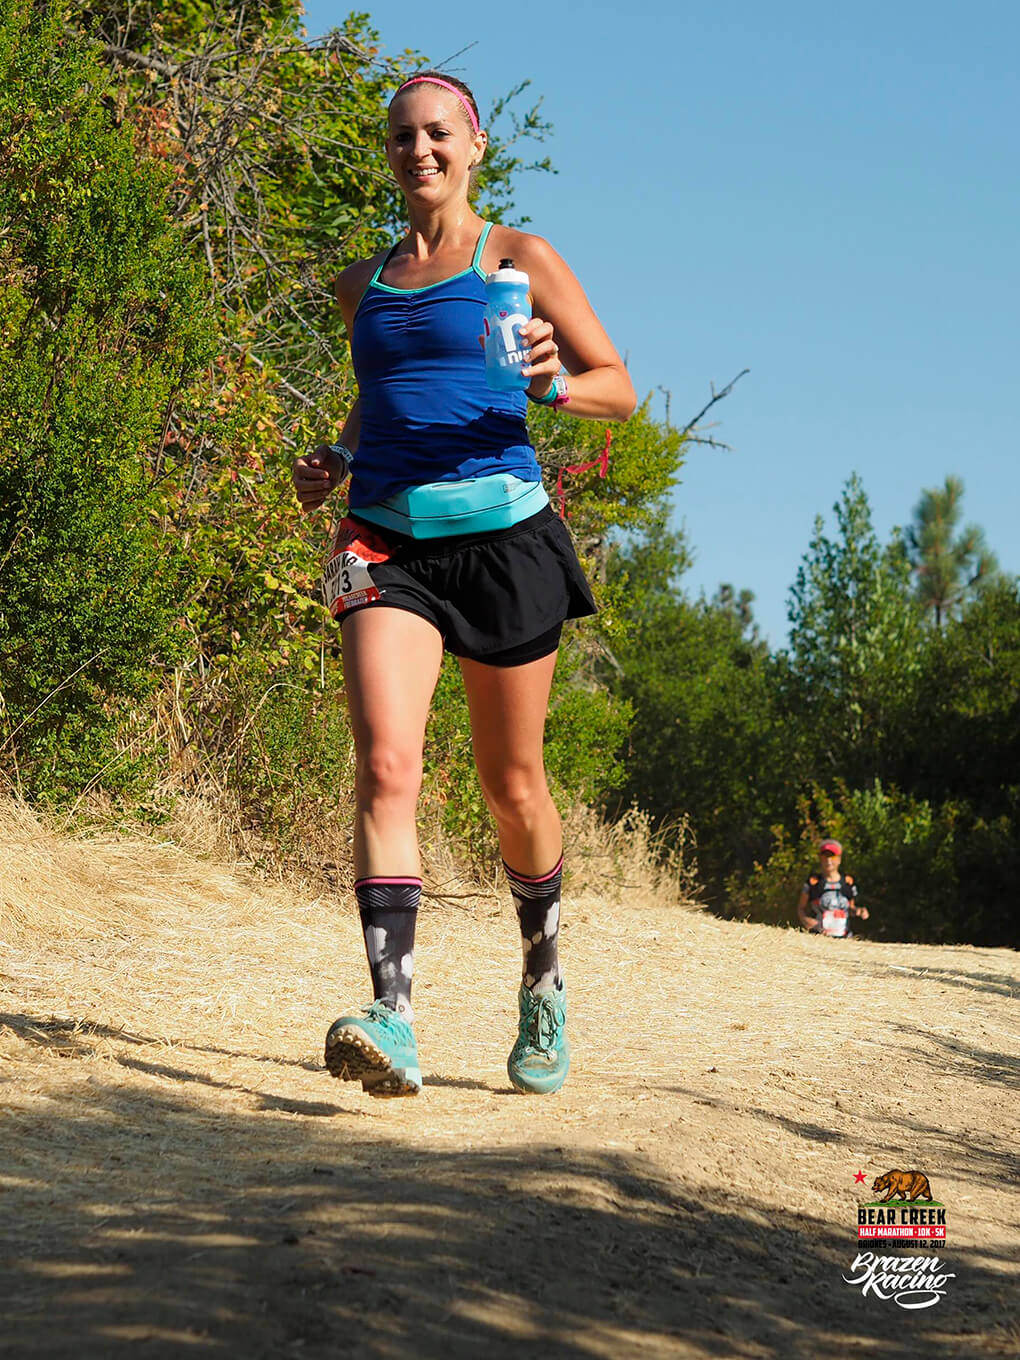 Brazen Trail Racing sarahkayhoffman.com Bear Creek Trail Running Sarah Kay Hoffman The Rules of Running #run #running #trailrunning